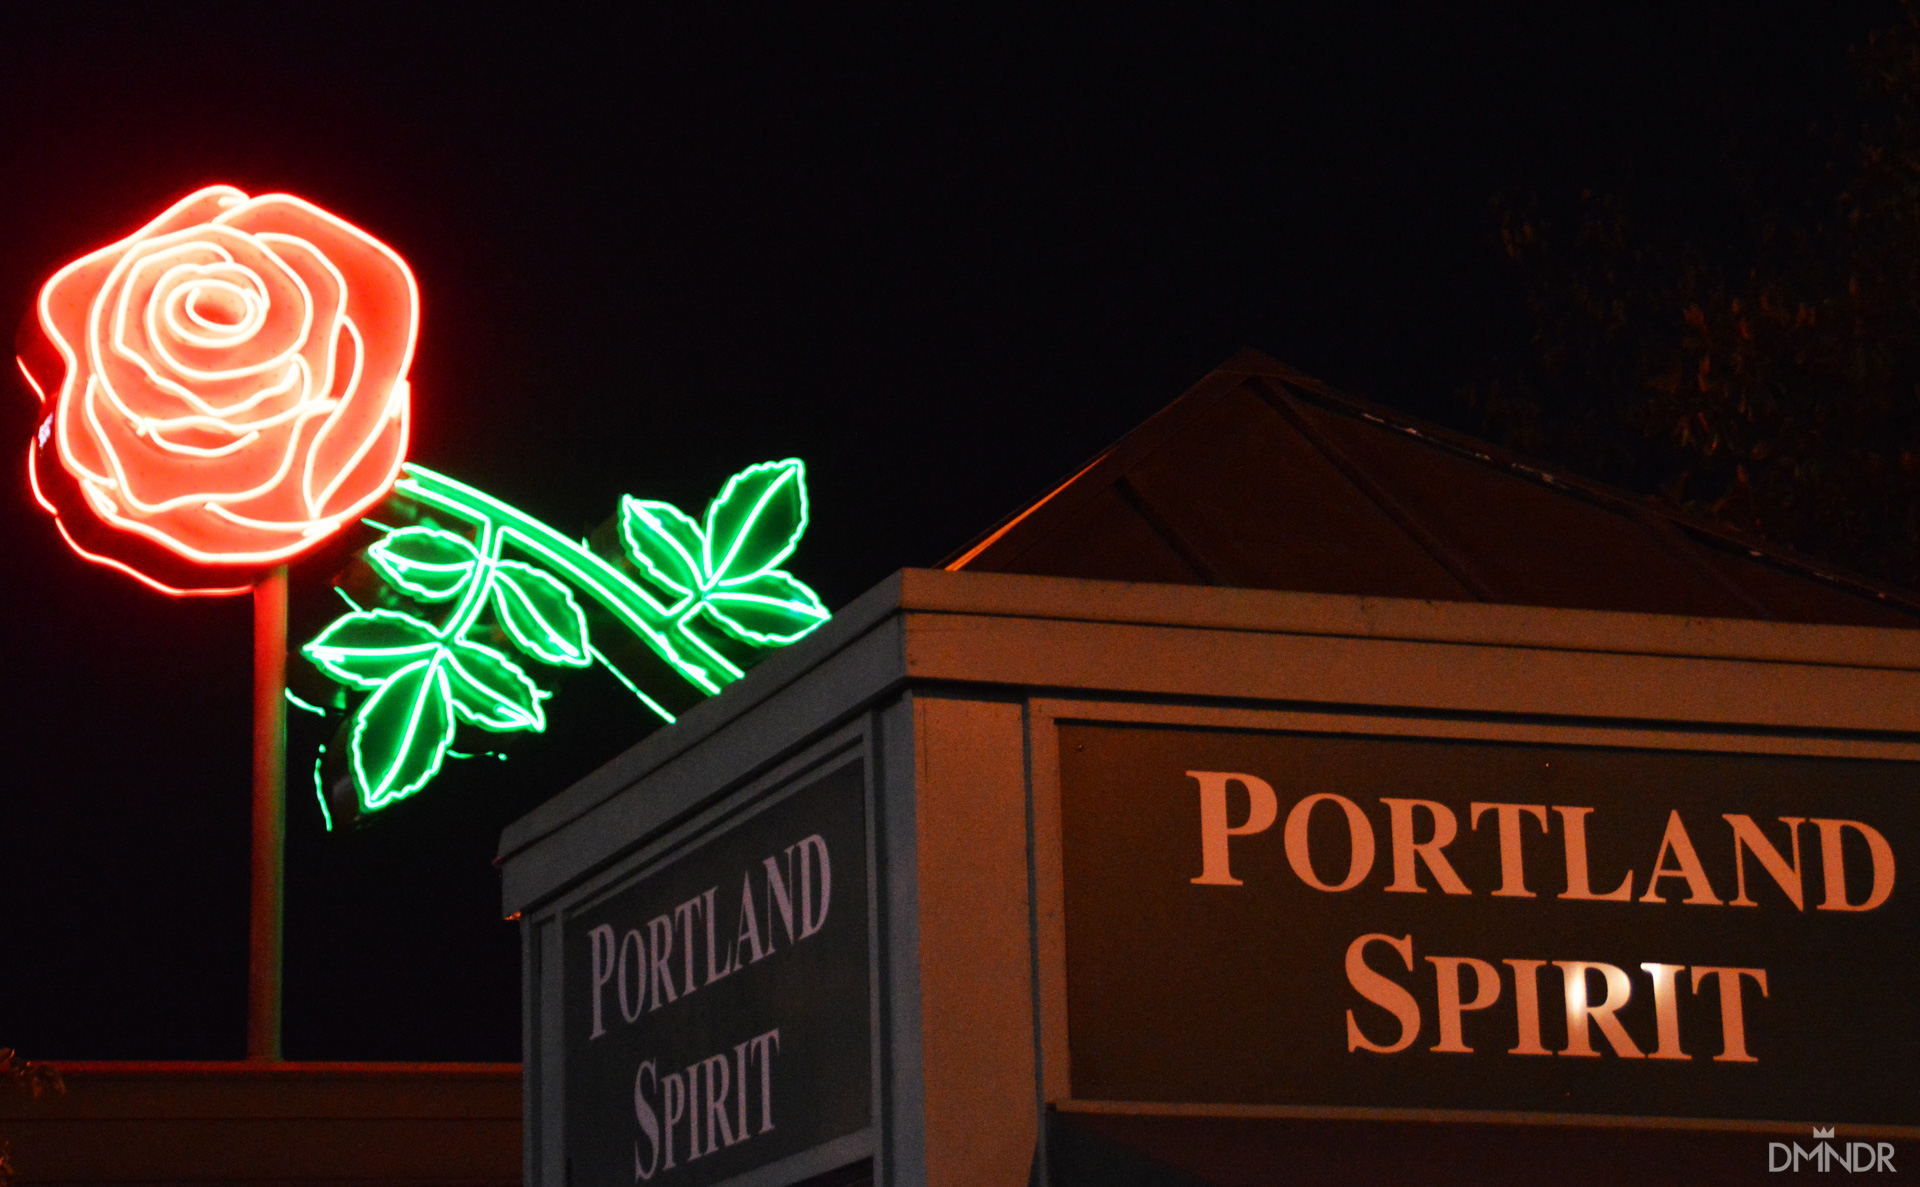 The Portland Rose and Spirit